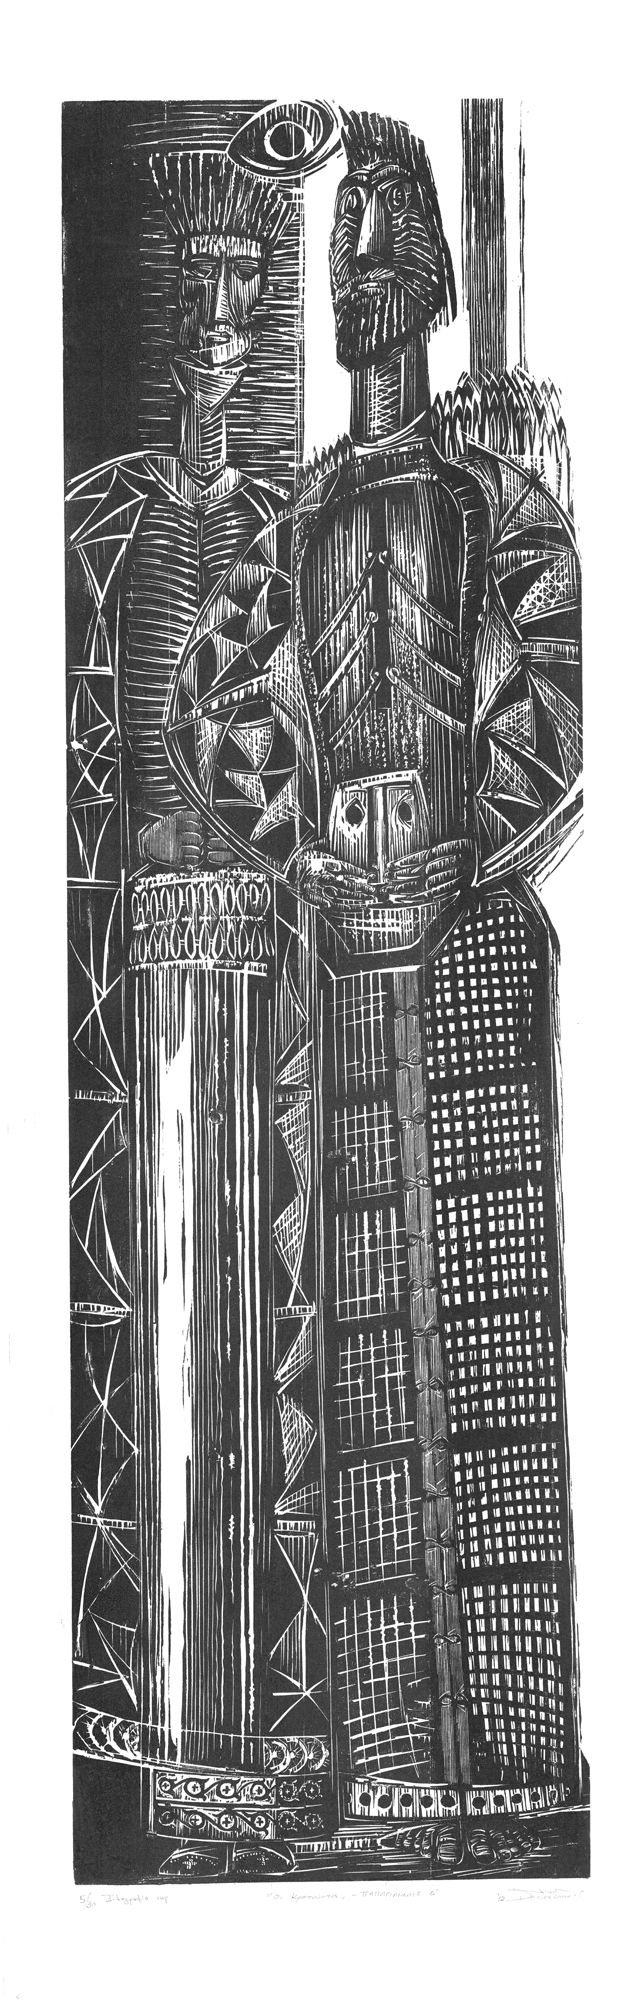 """The Rulers (Οι  Κρατούντες). Woodcut. Nikos Desekopoulos. From the 2014 exhibition """"When engraving meets sculpture""""."""